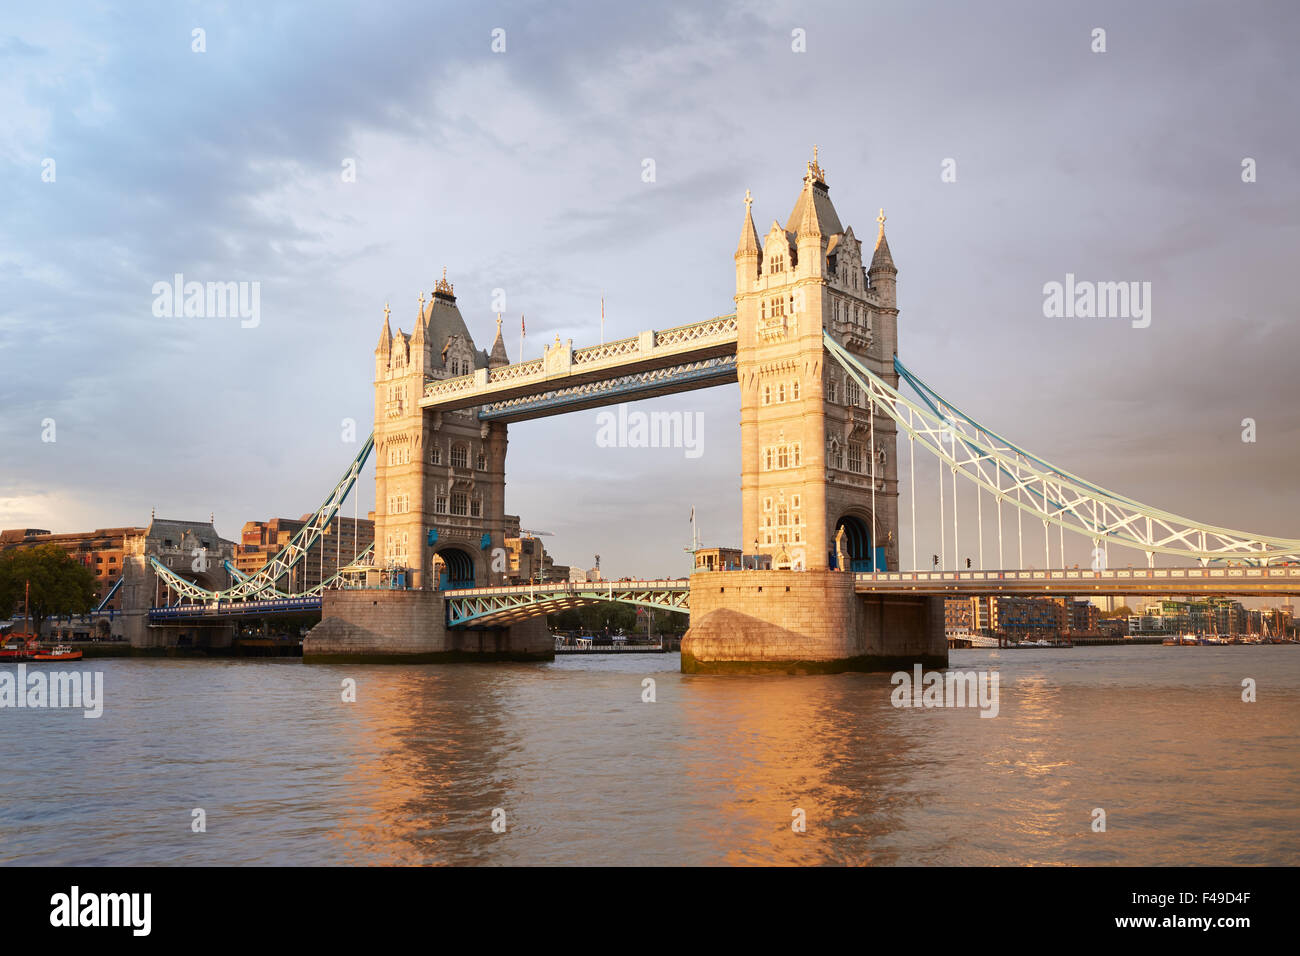 Tower bridge in London in the afternoon sunlight - Stock Image